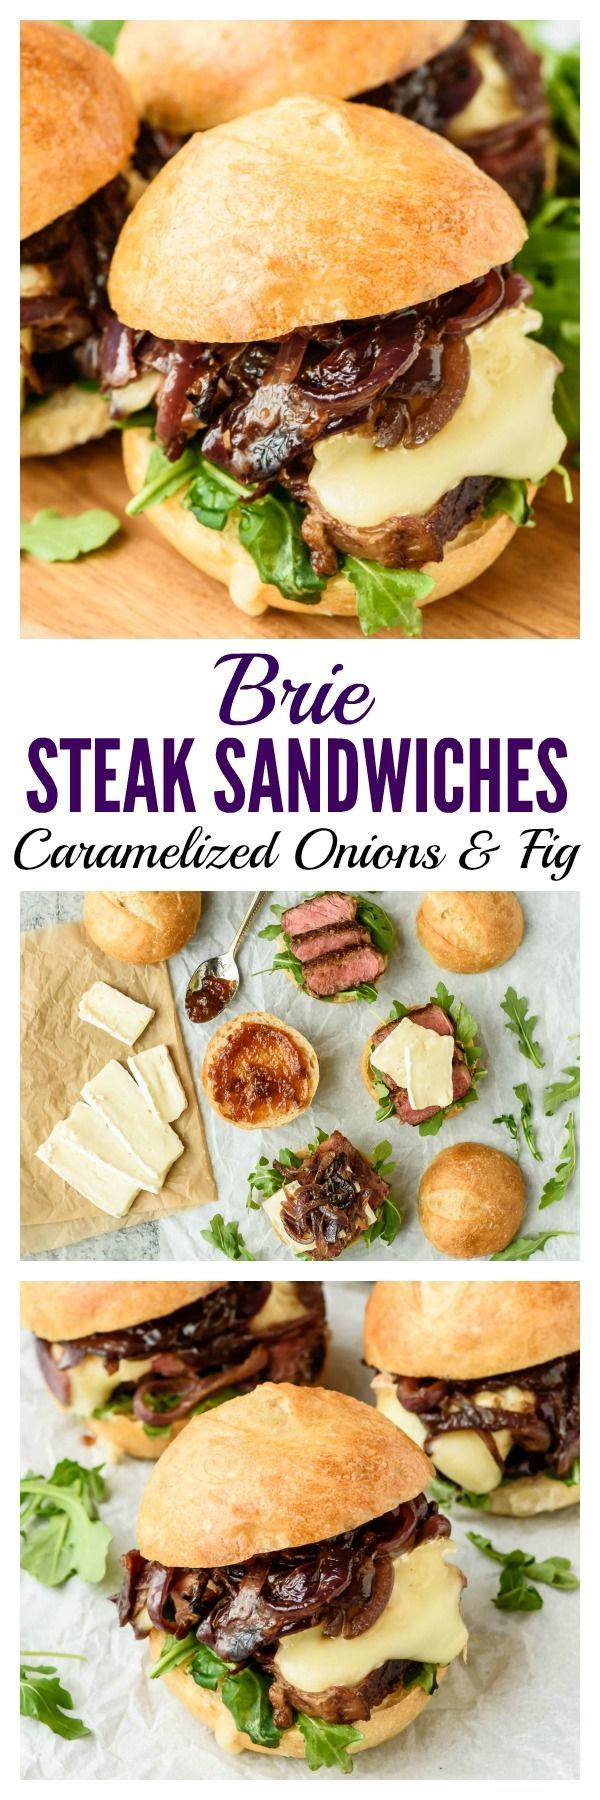 Steak Sliders with Brie - Easy  to prep ahead for a tailgate food, football party, or game day!